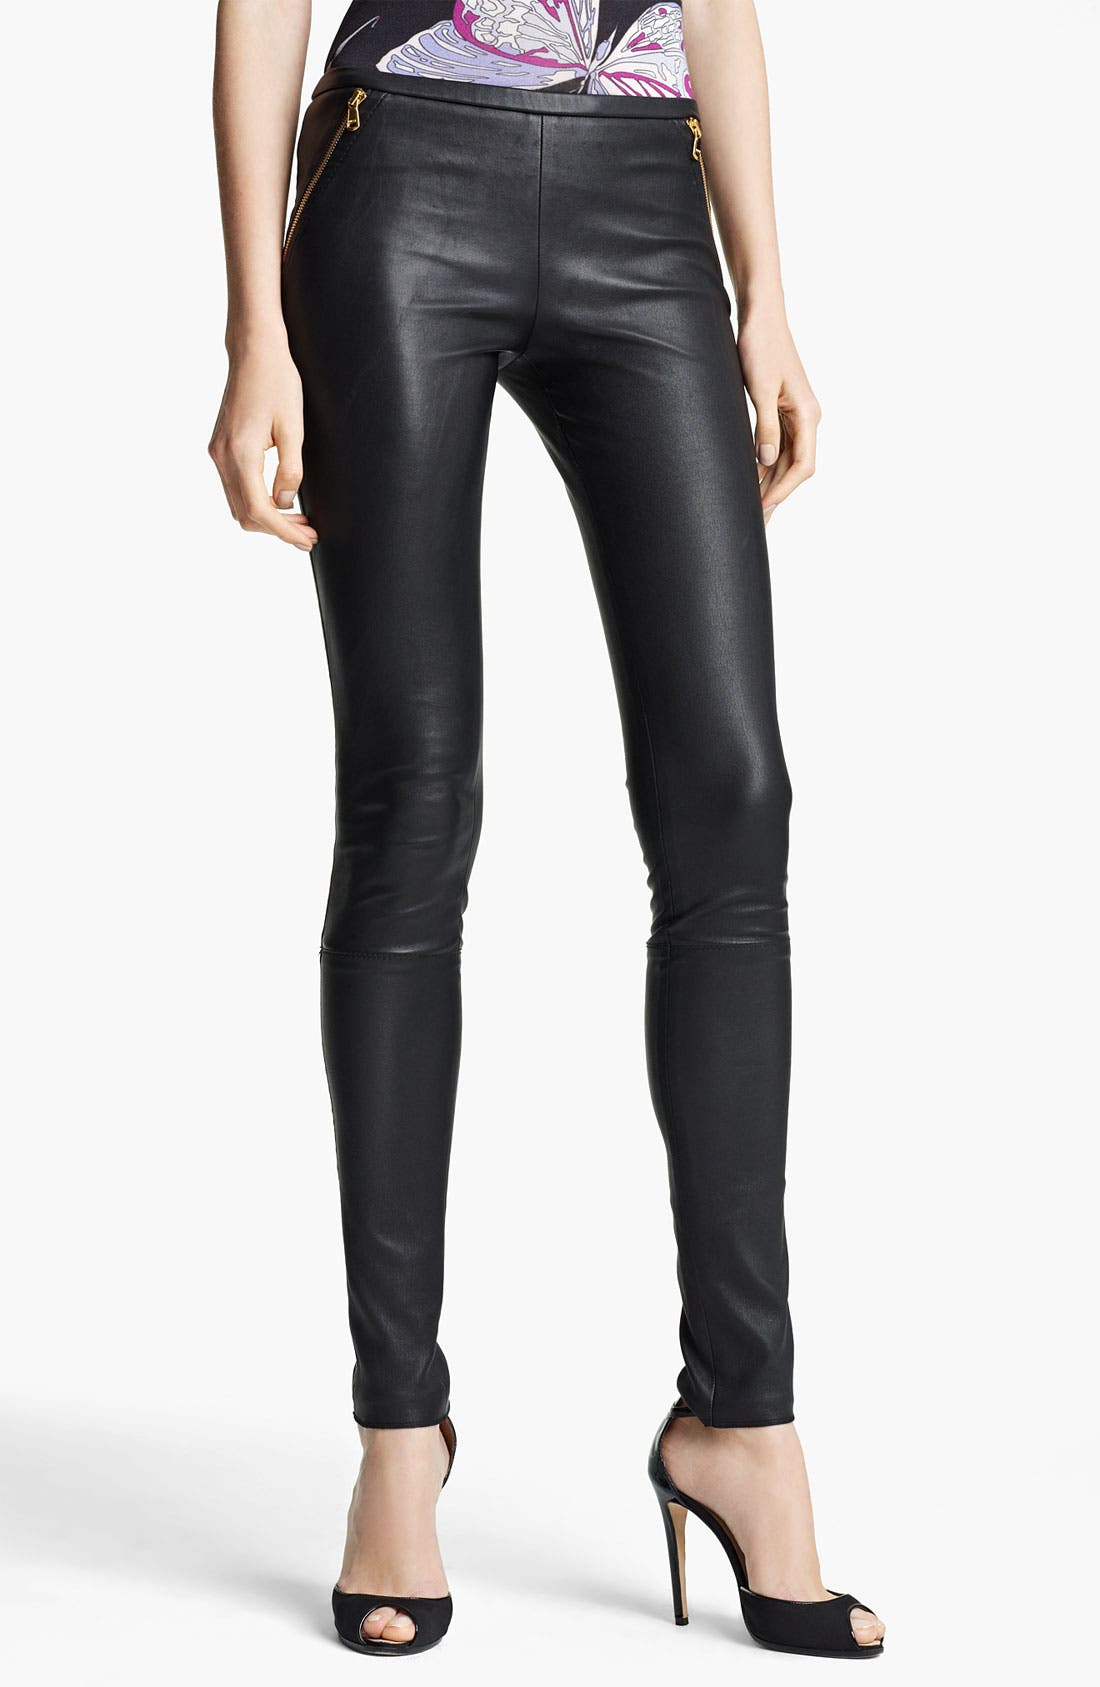 Main Image - Emilio Pucci Lambskin Leather Leggings